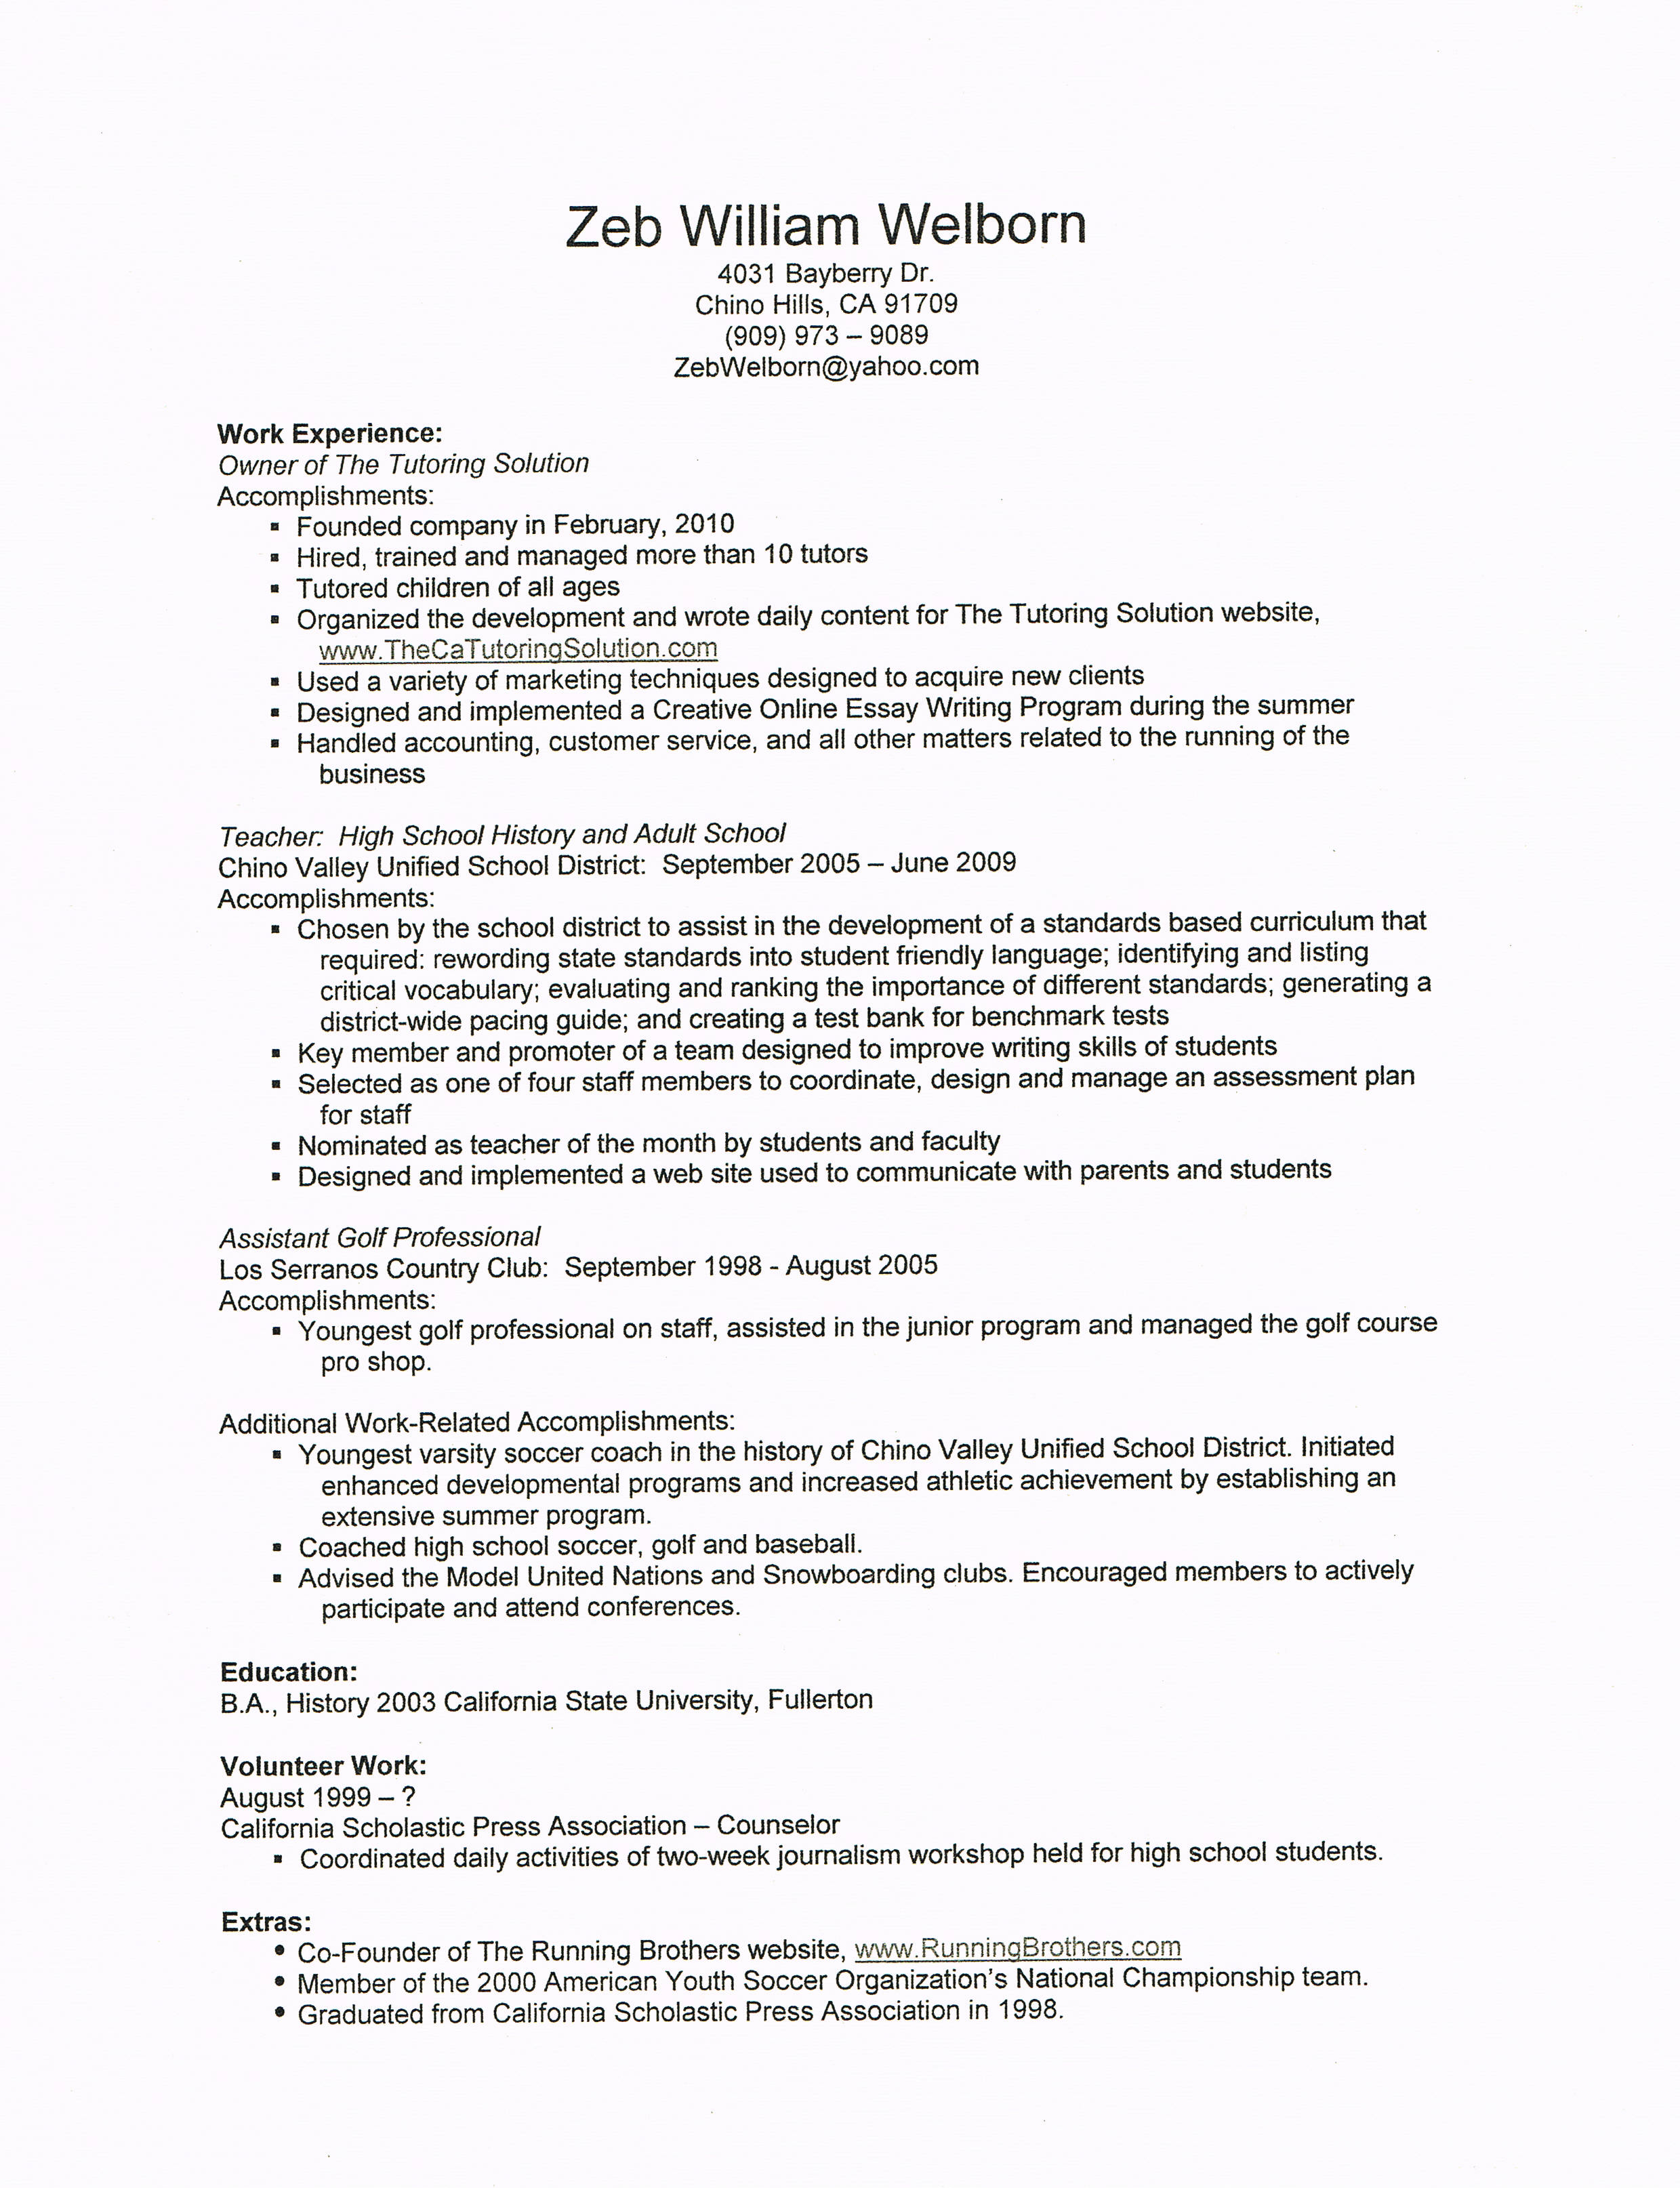 Tutor Resume Sample Zeb Welborns Resume The Tutoring Solution